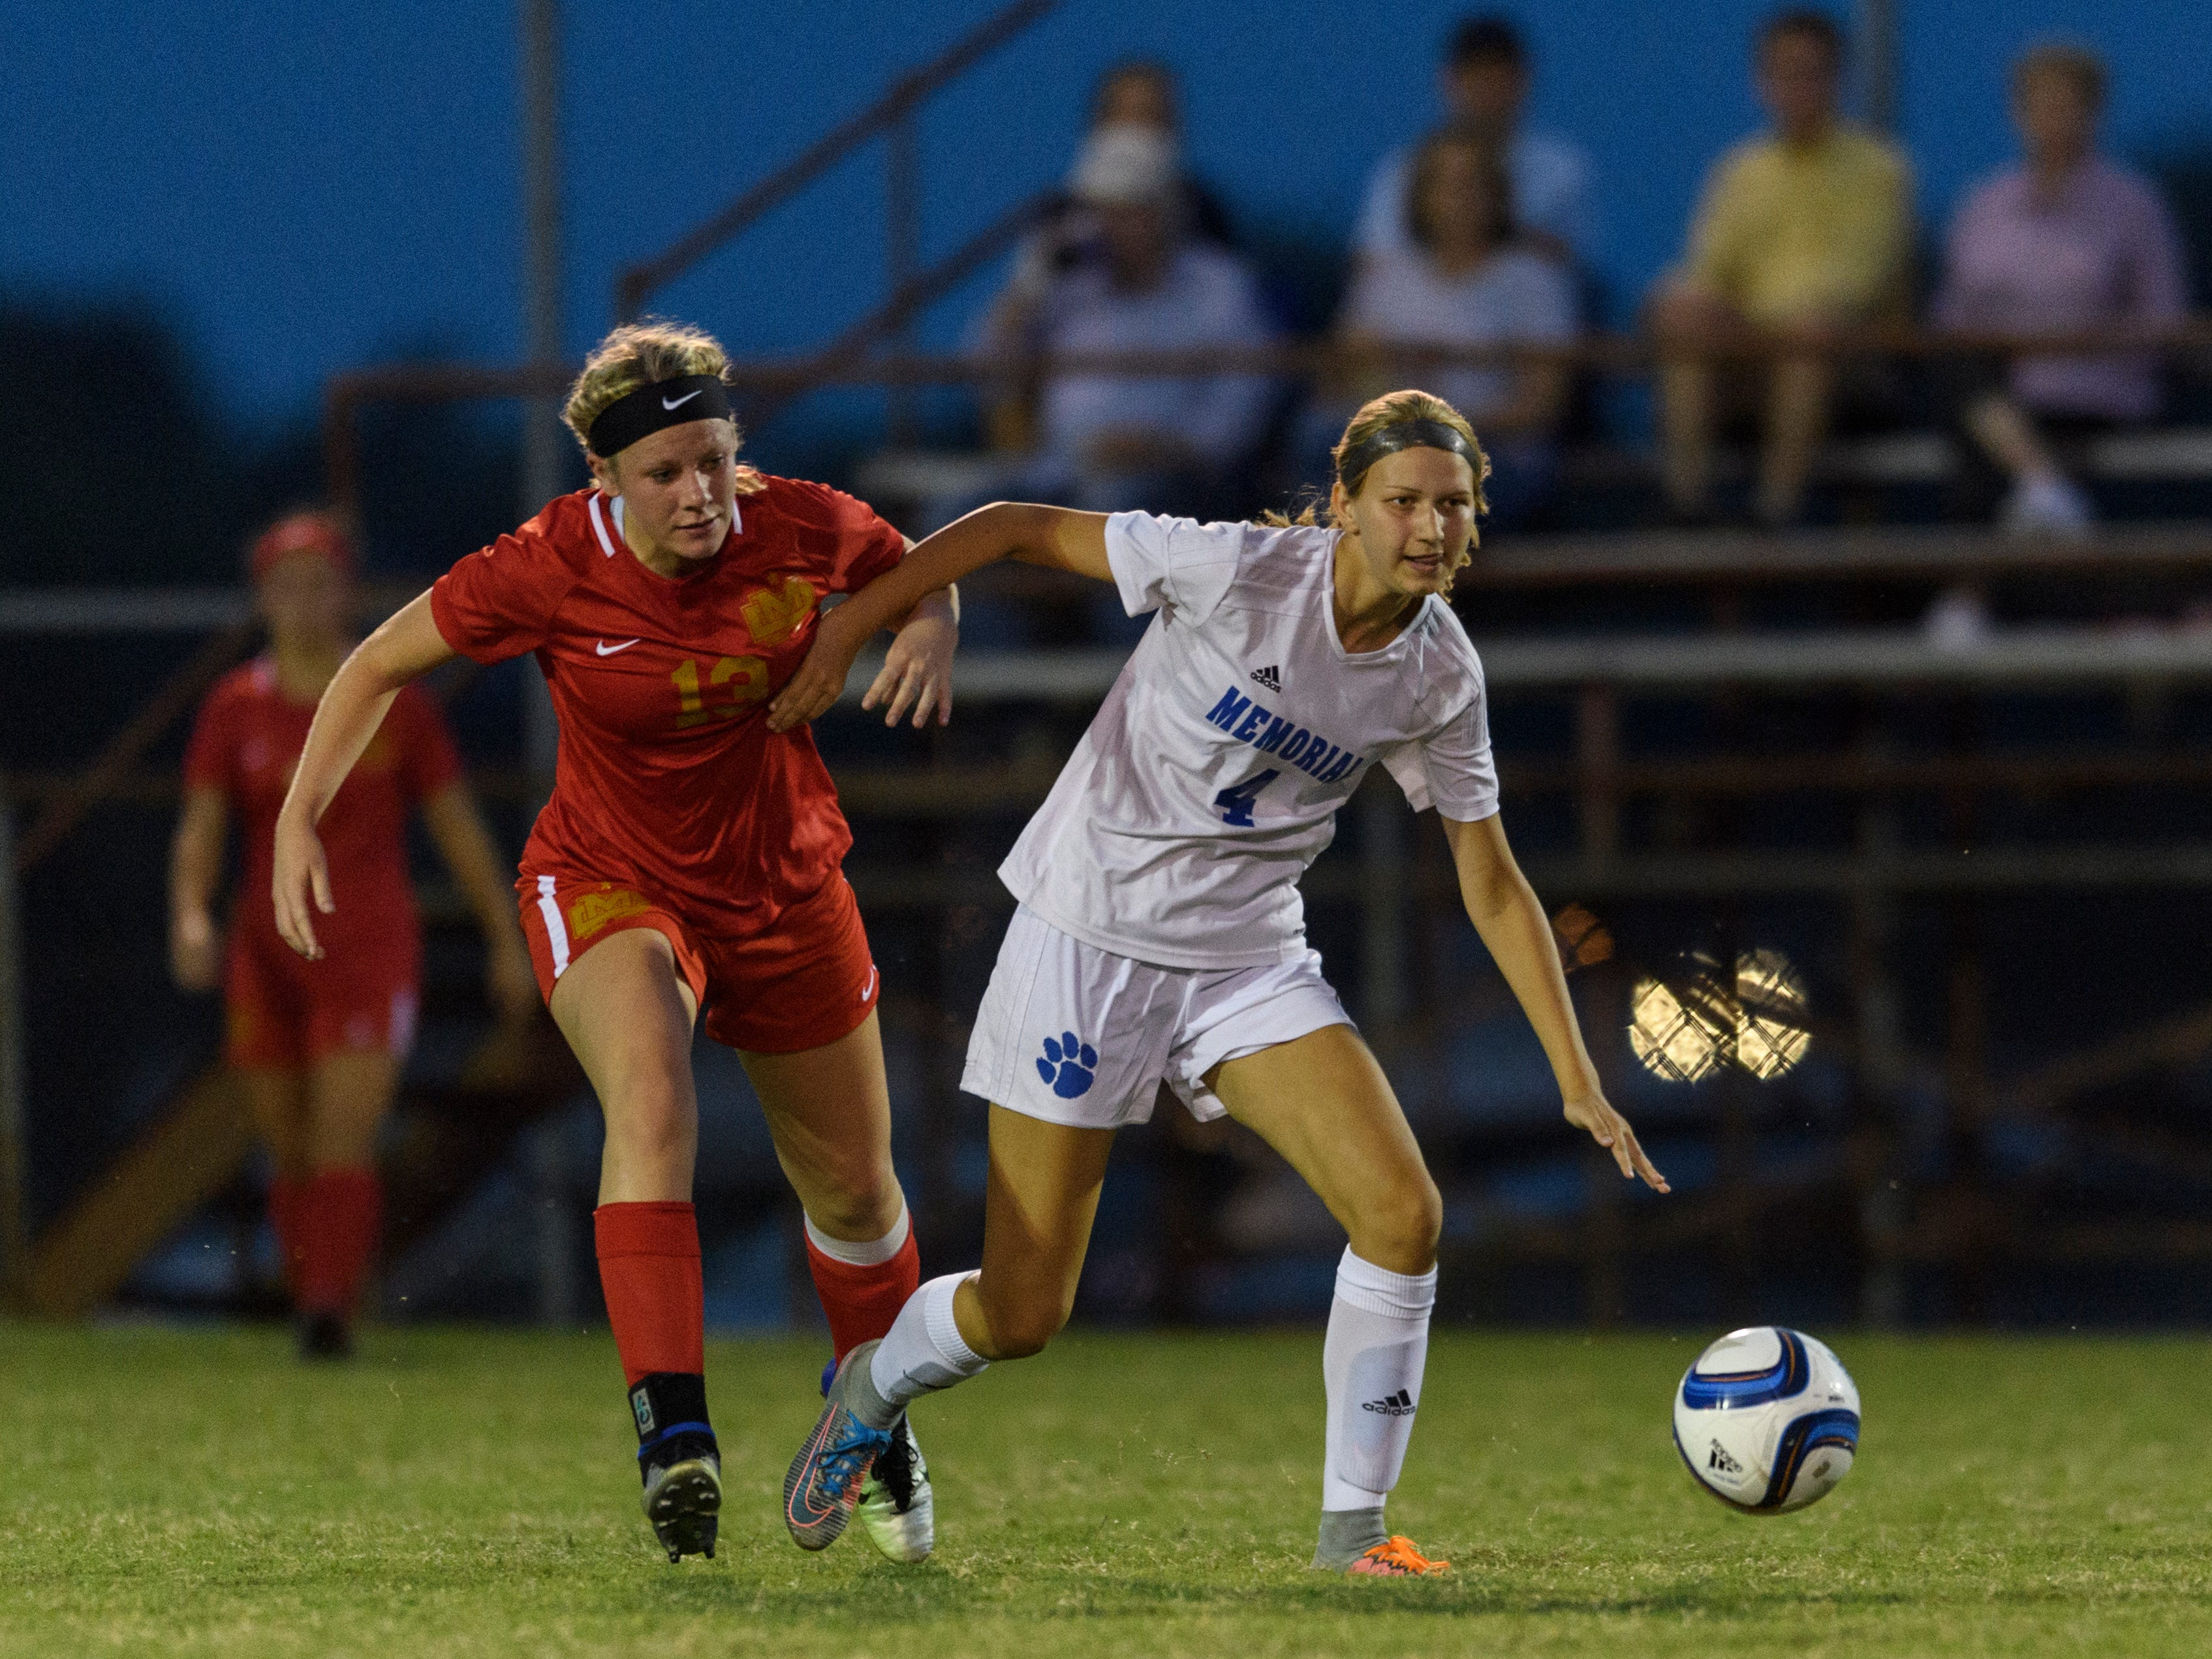 Mater Dei's Katherine Hahn (13) guards Memorial's Abby Burger (4) during the match at EVSC Soccer Fields in Evansville, Ind., Monday, Aug. 20, 2018. The Tigers defeated the Wildcats 4-0.